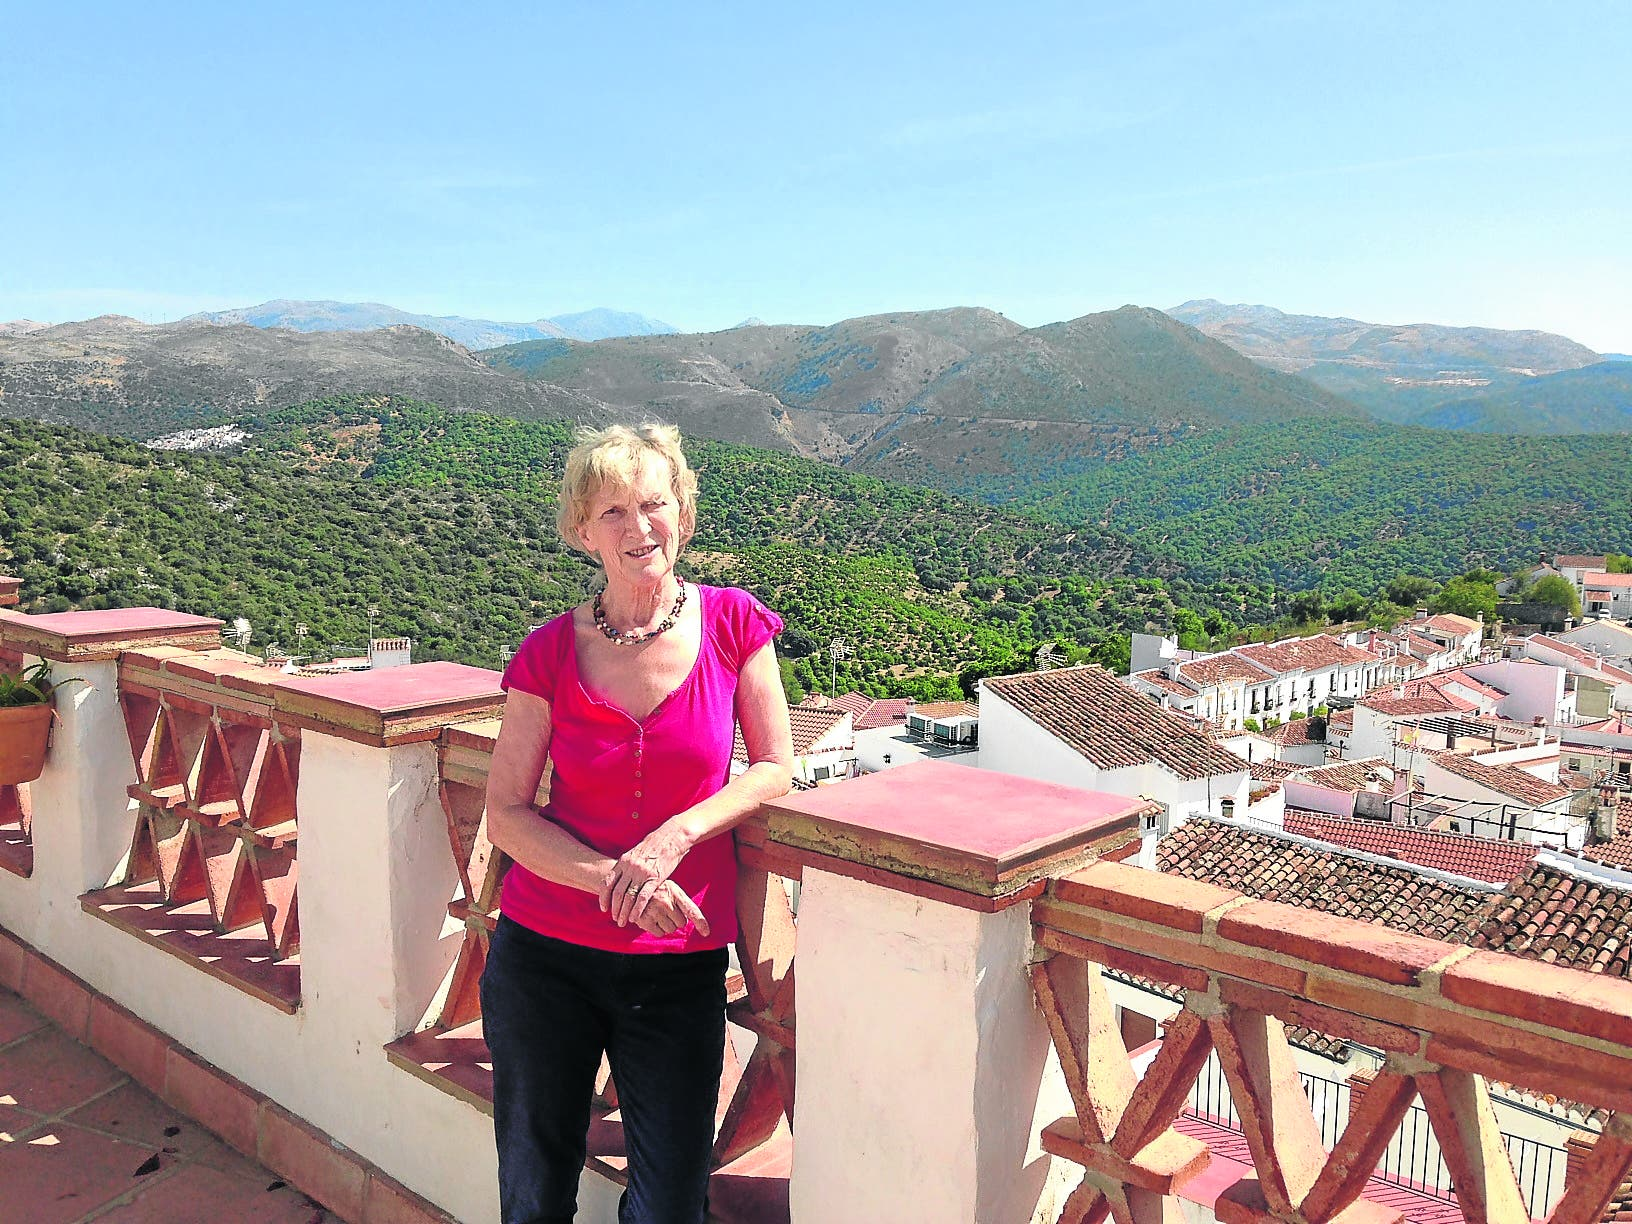 An expat in Spain's New England